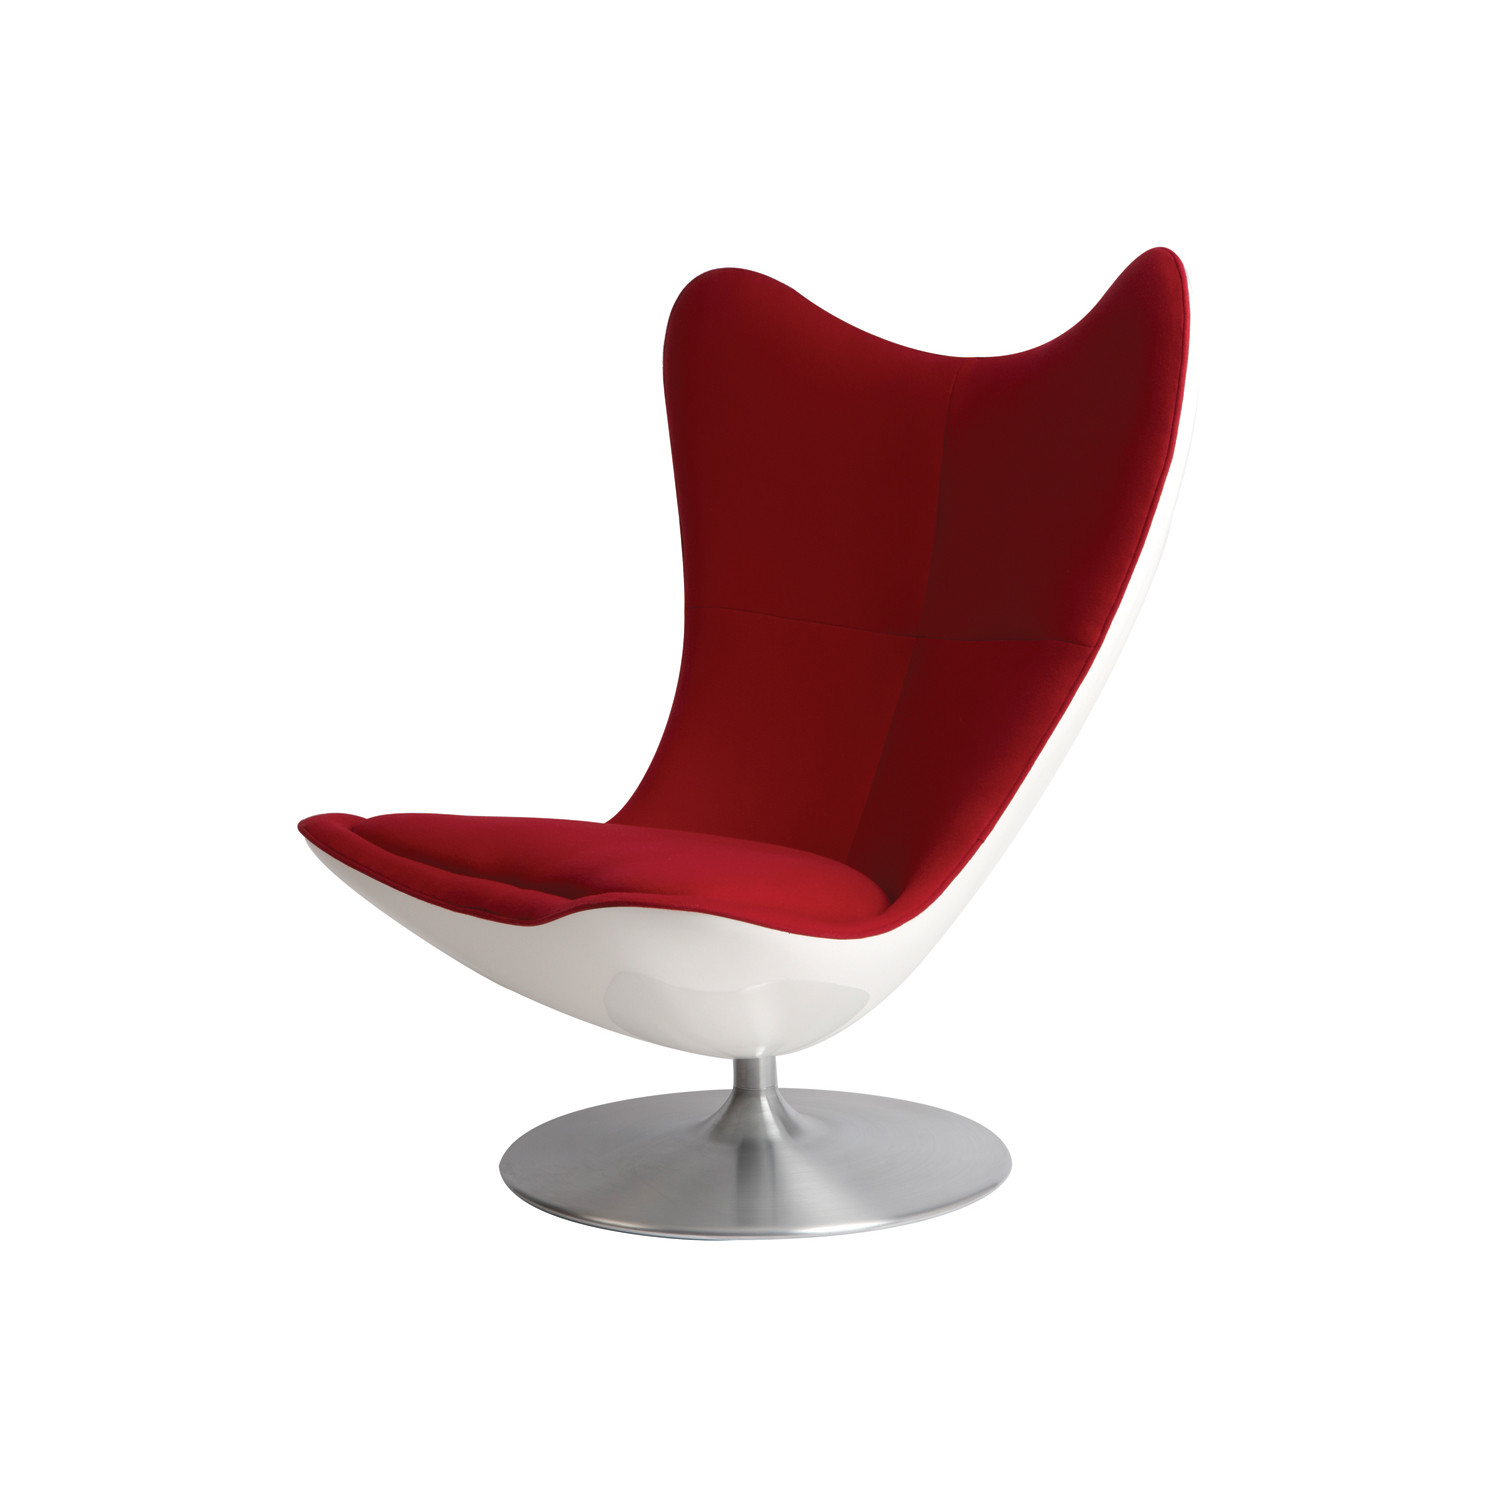 white shell chair cover hire berkshire glove 43 red felt content by conran